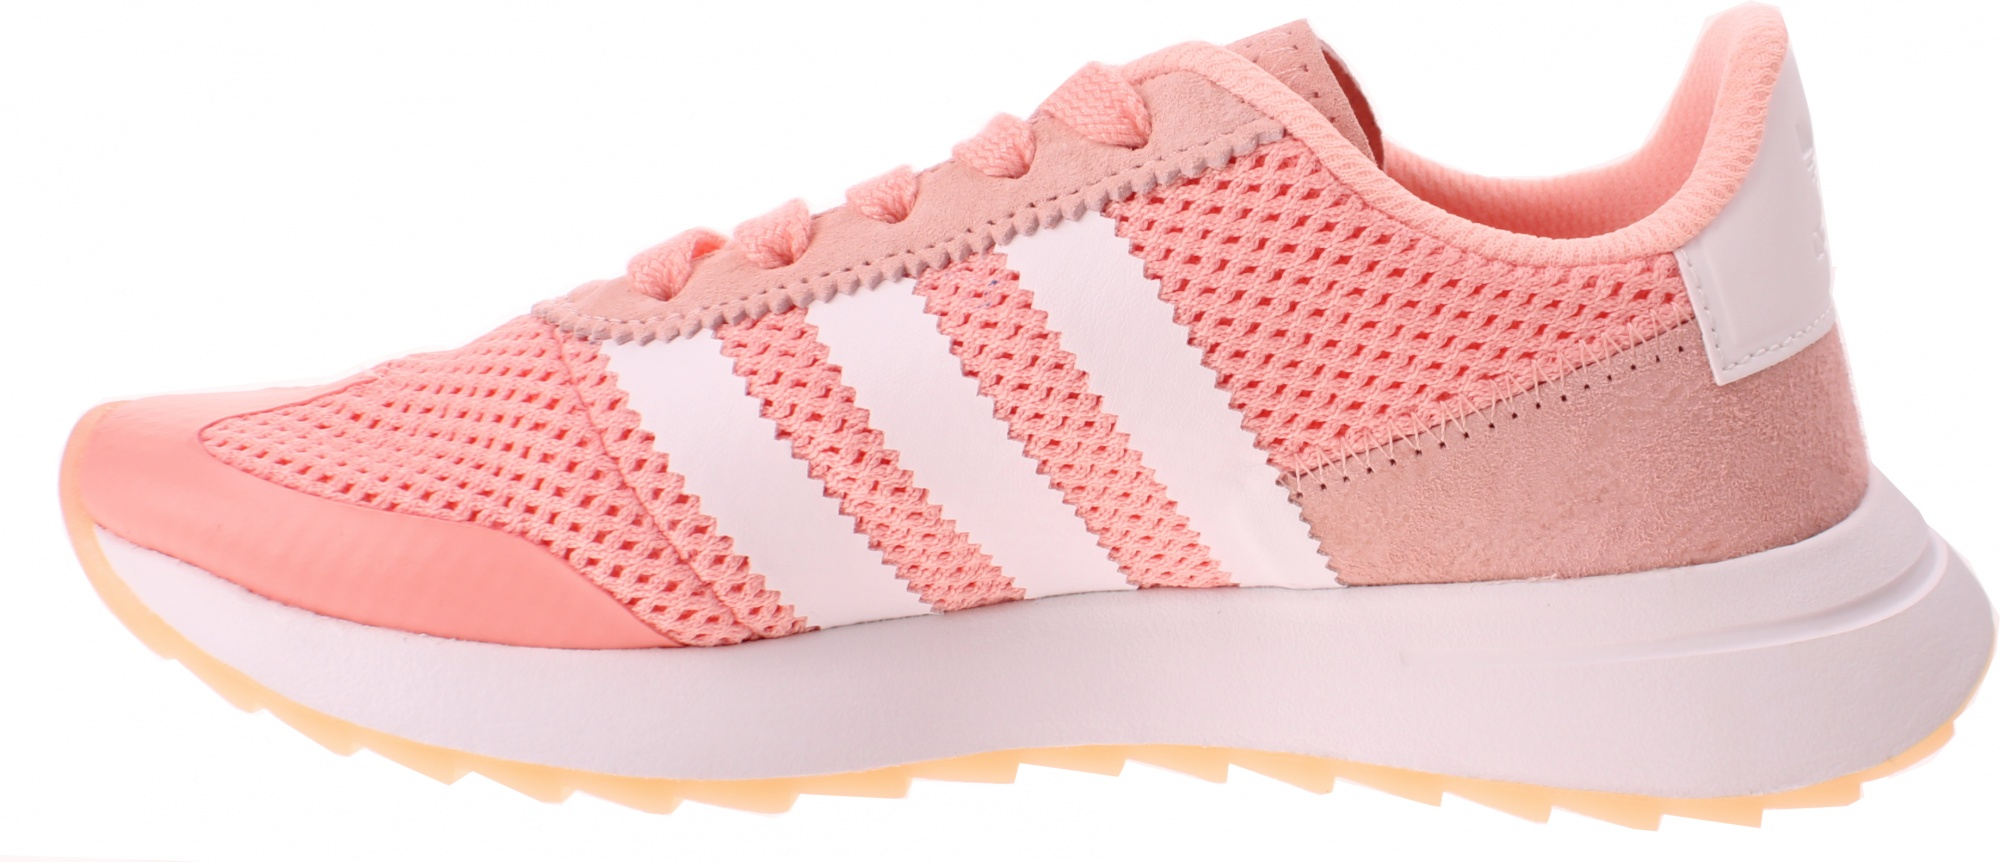 huge discount 60427 952a5 adidas sneakers Flashback ladies pink adidas sneakers Flashback ladies pink  ...